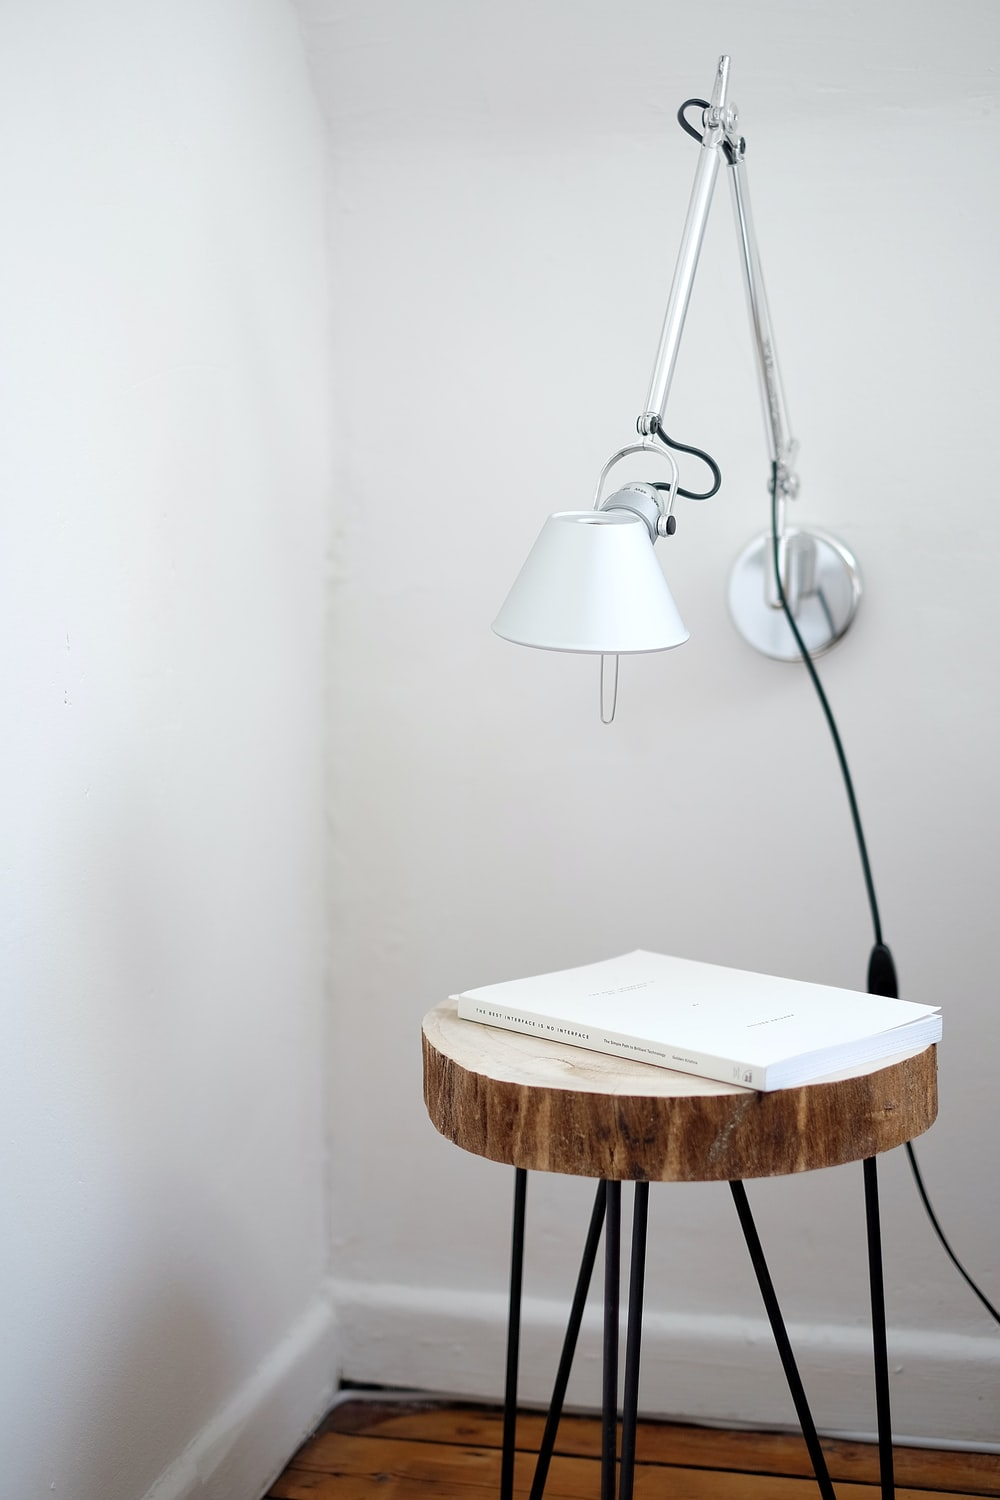 gray desk lamp mount on white wall under brown stool with white book on top near wall corner